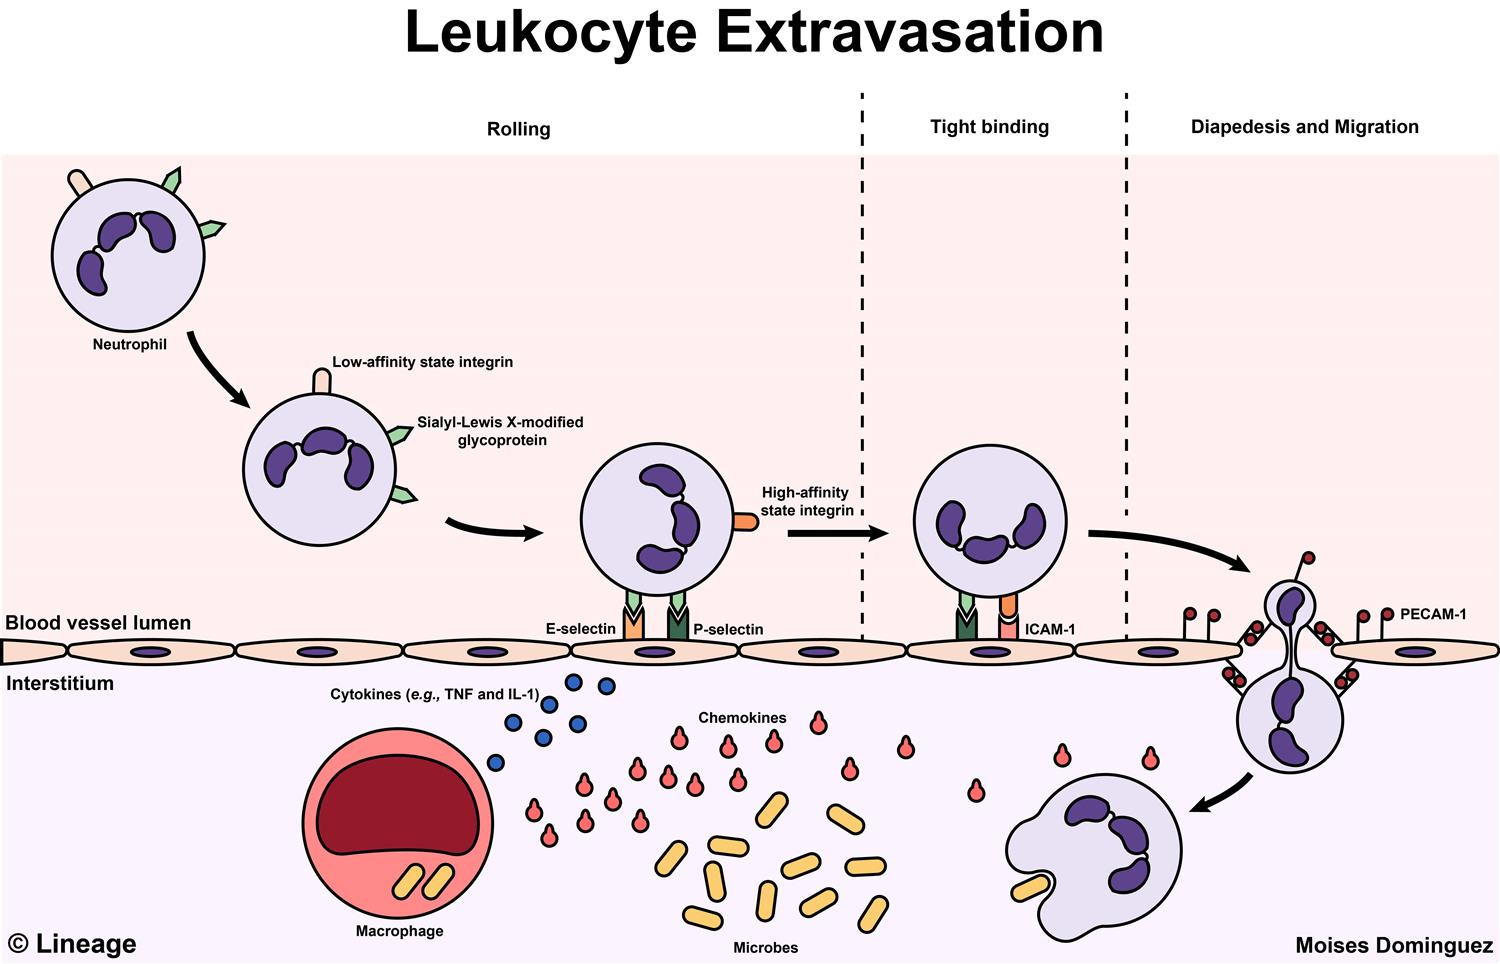 Leukocyte Extravasation - Pathology - Medbullets Step 1